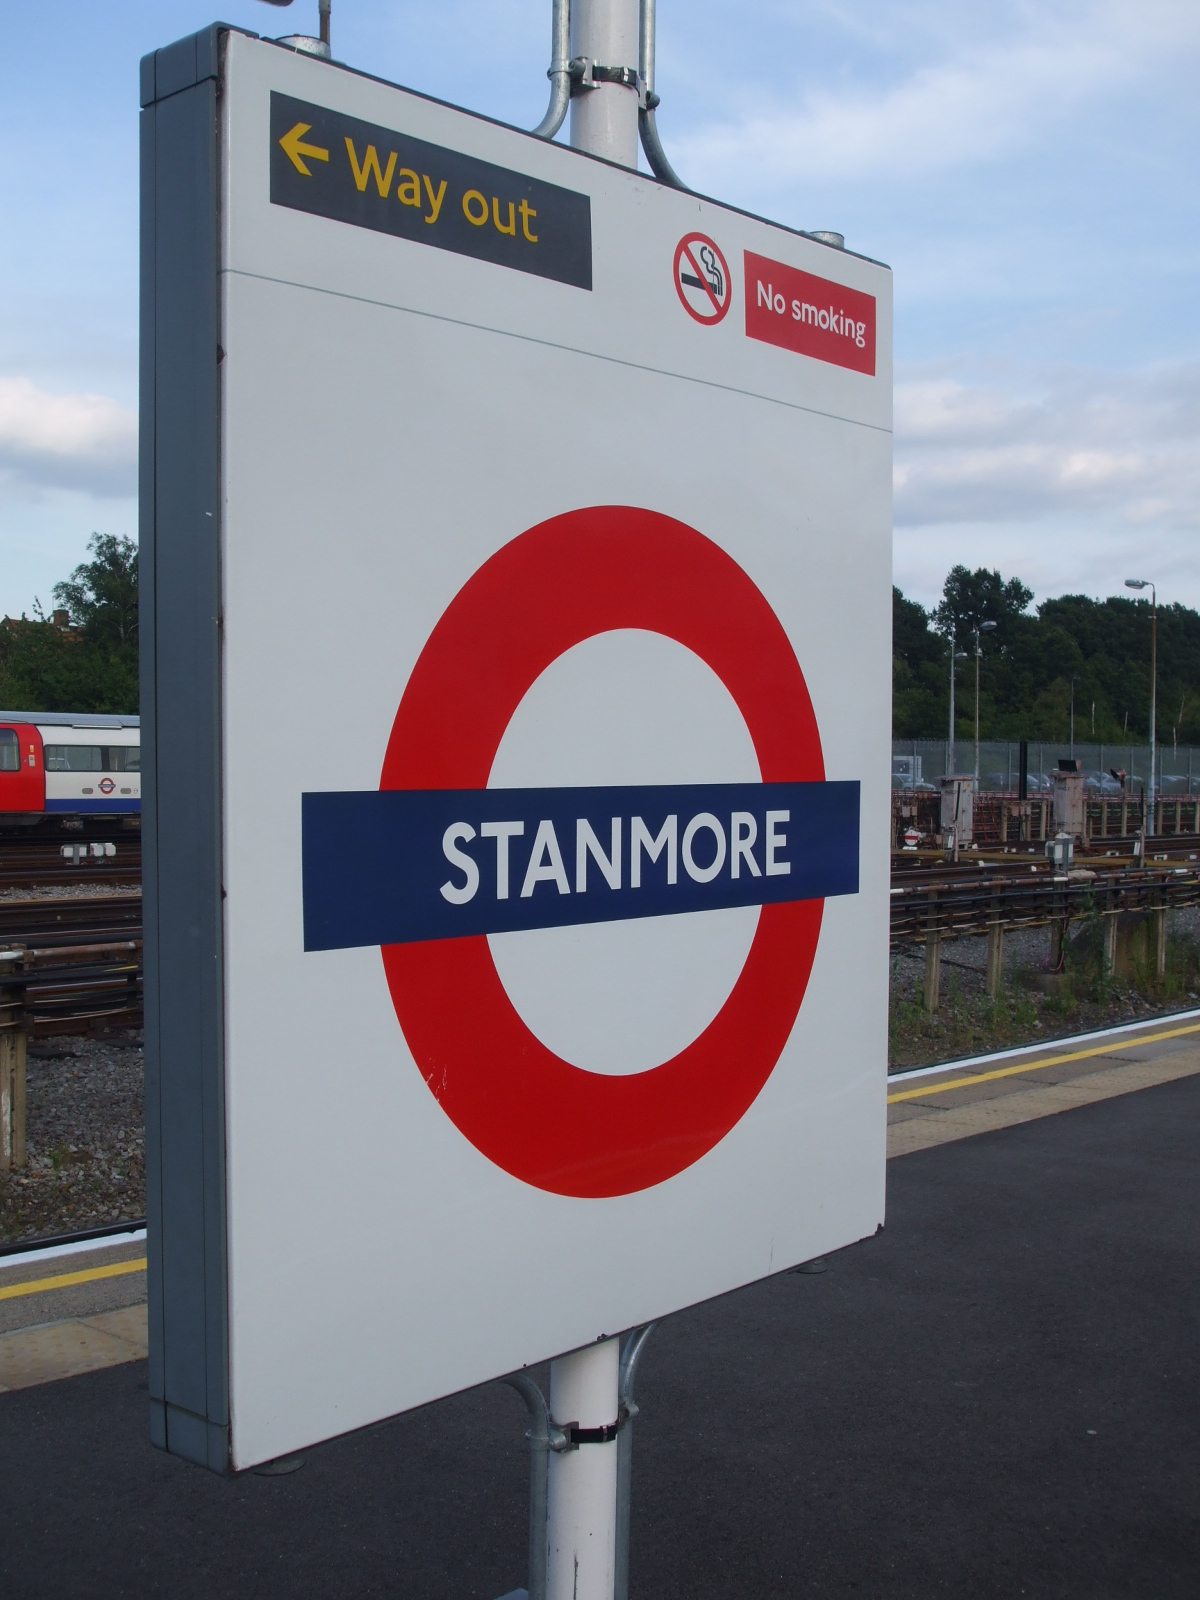 stanmore online dating Start your journey to success at a beautiful and rewarding college located in leafy  stanmore.